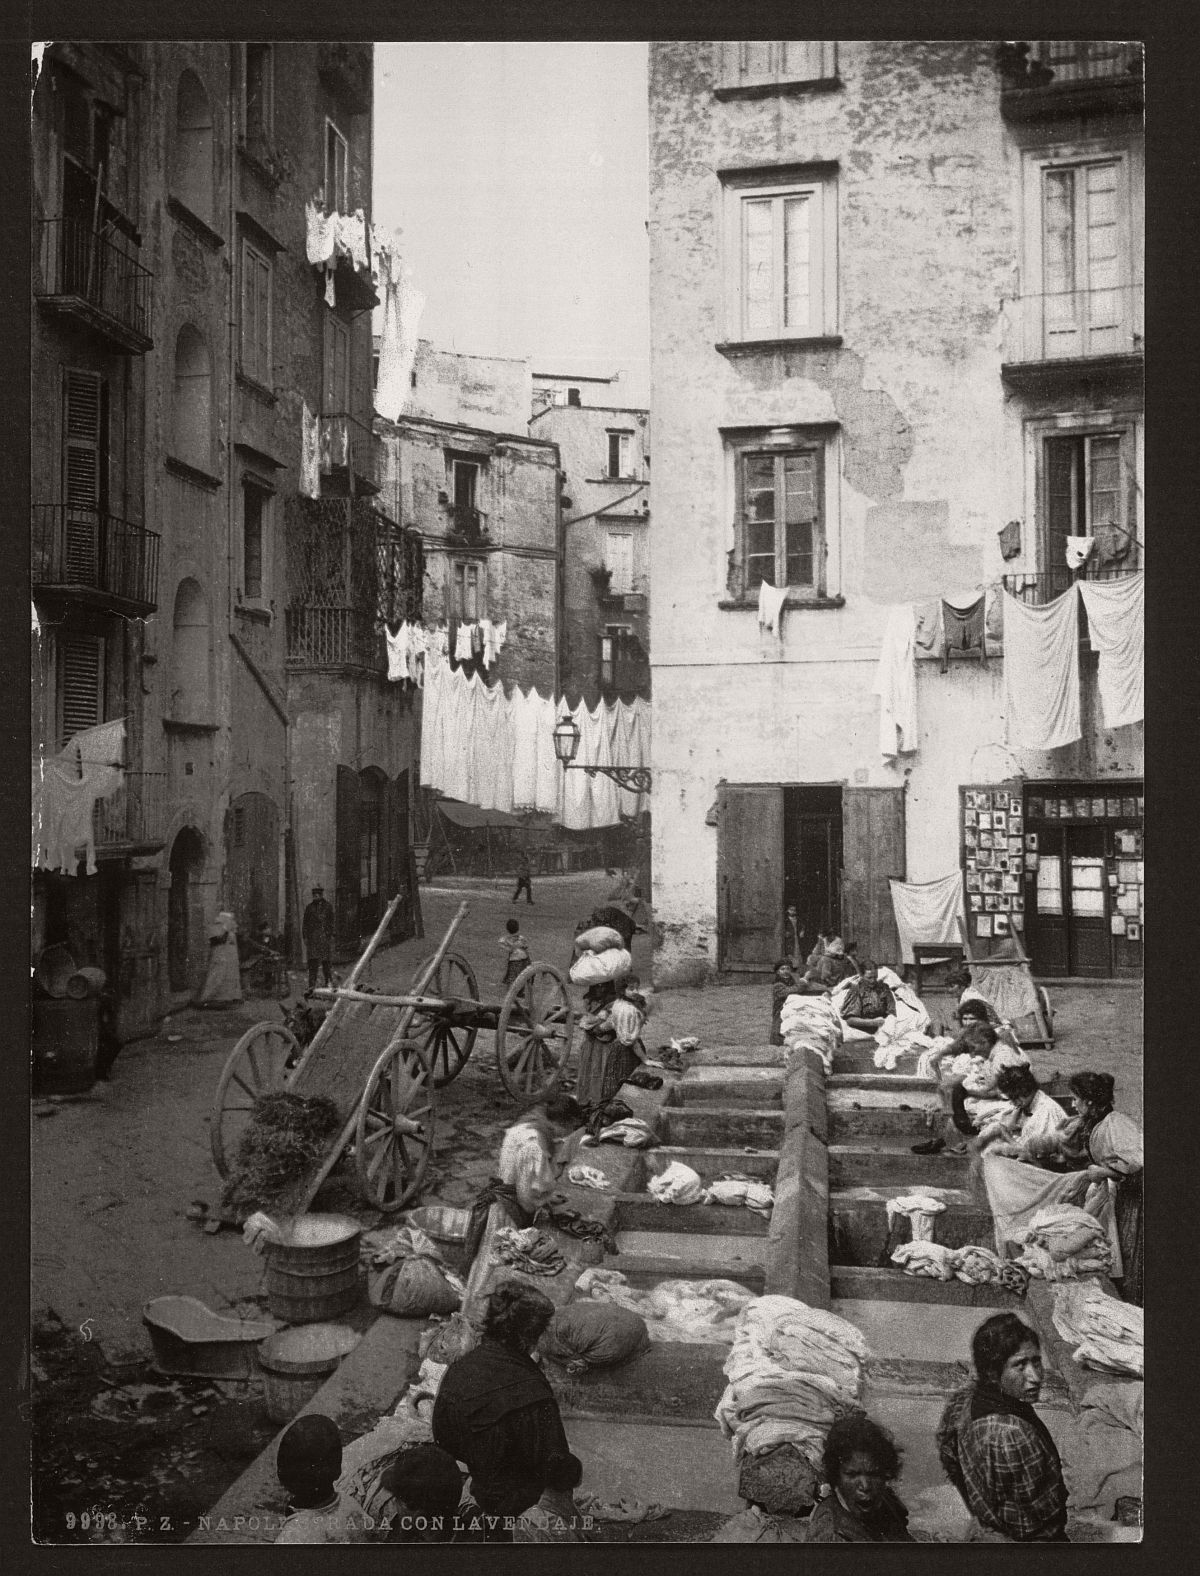 historic-bw-photos-of-naples-italy-in-19th-century-07